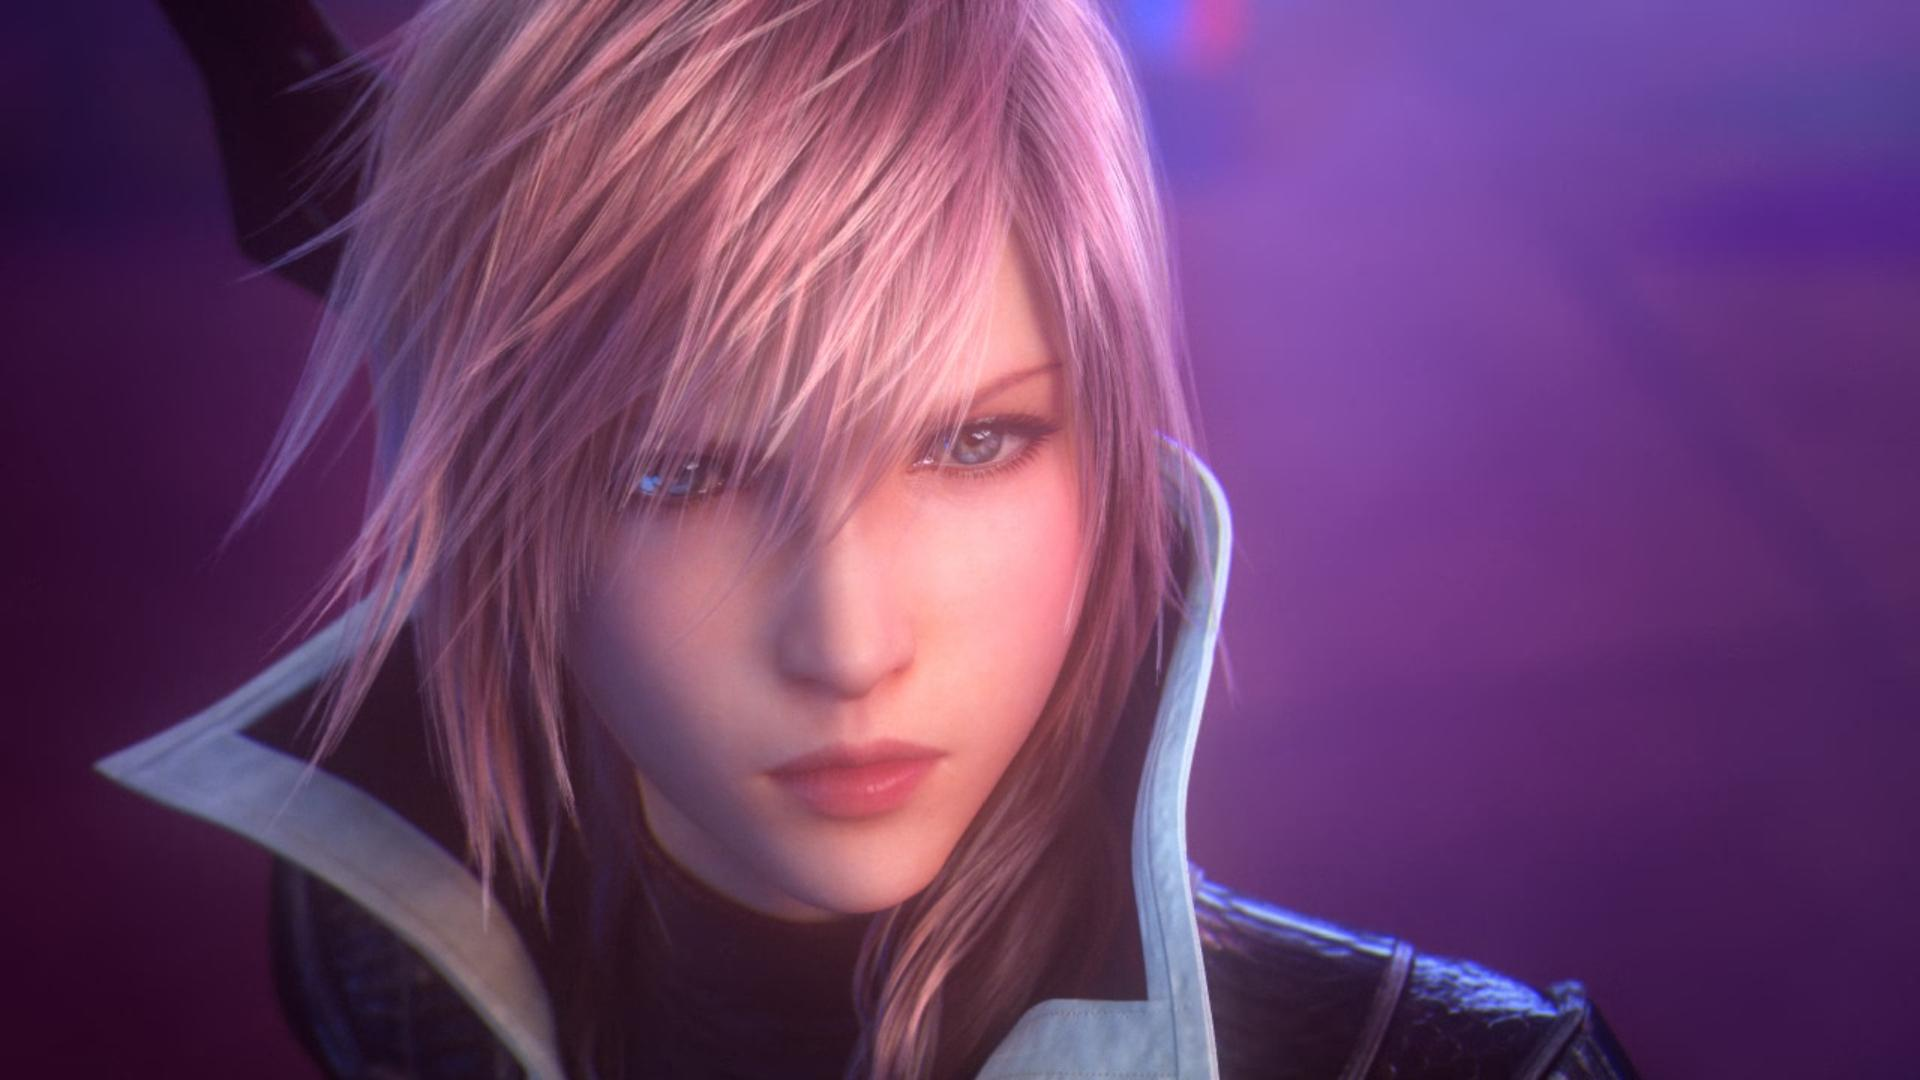 Lightning Returns Final Fantasy Xiii Hd Wallpaper Background